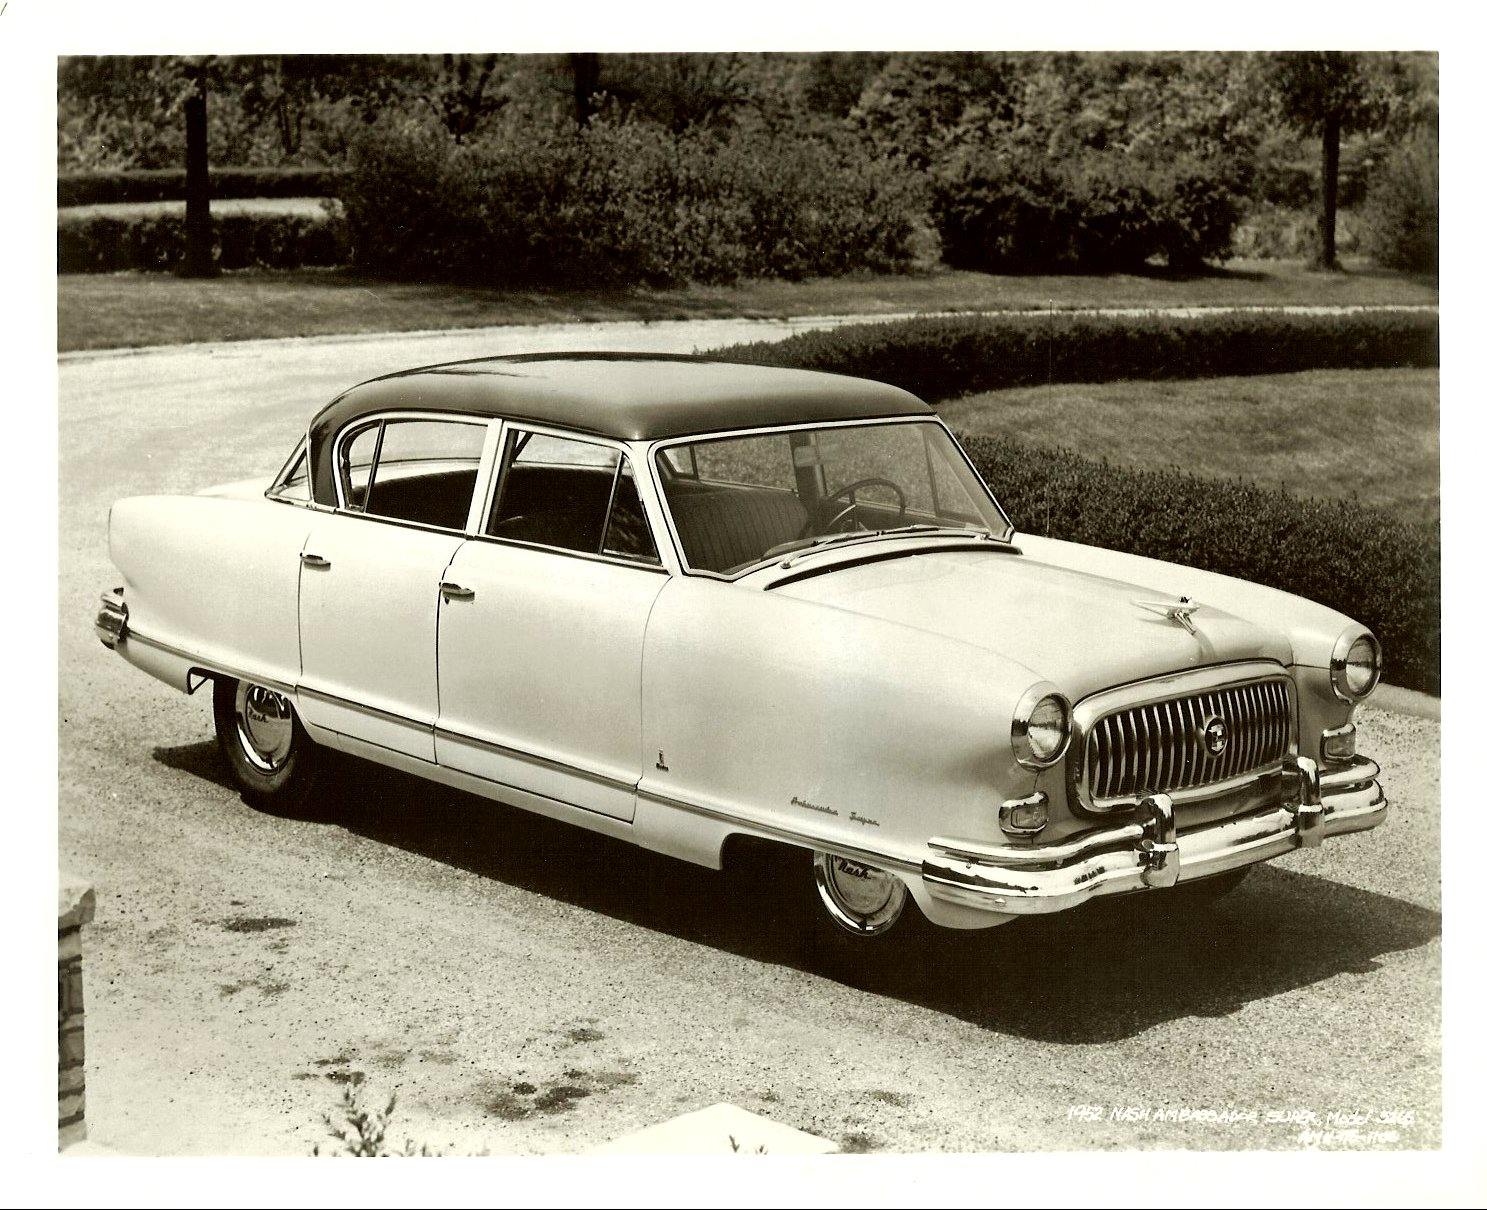 1952 NASH Ambassador Super 5265 10″x8″ Black & White photograph